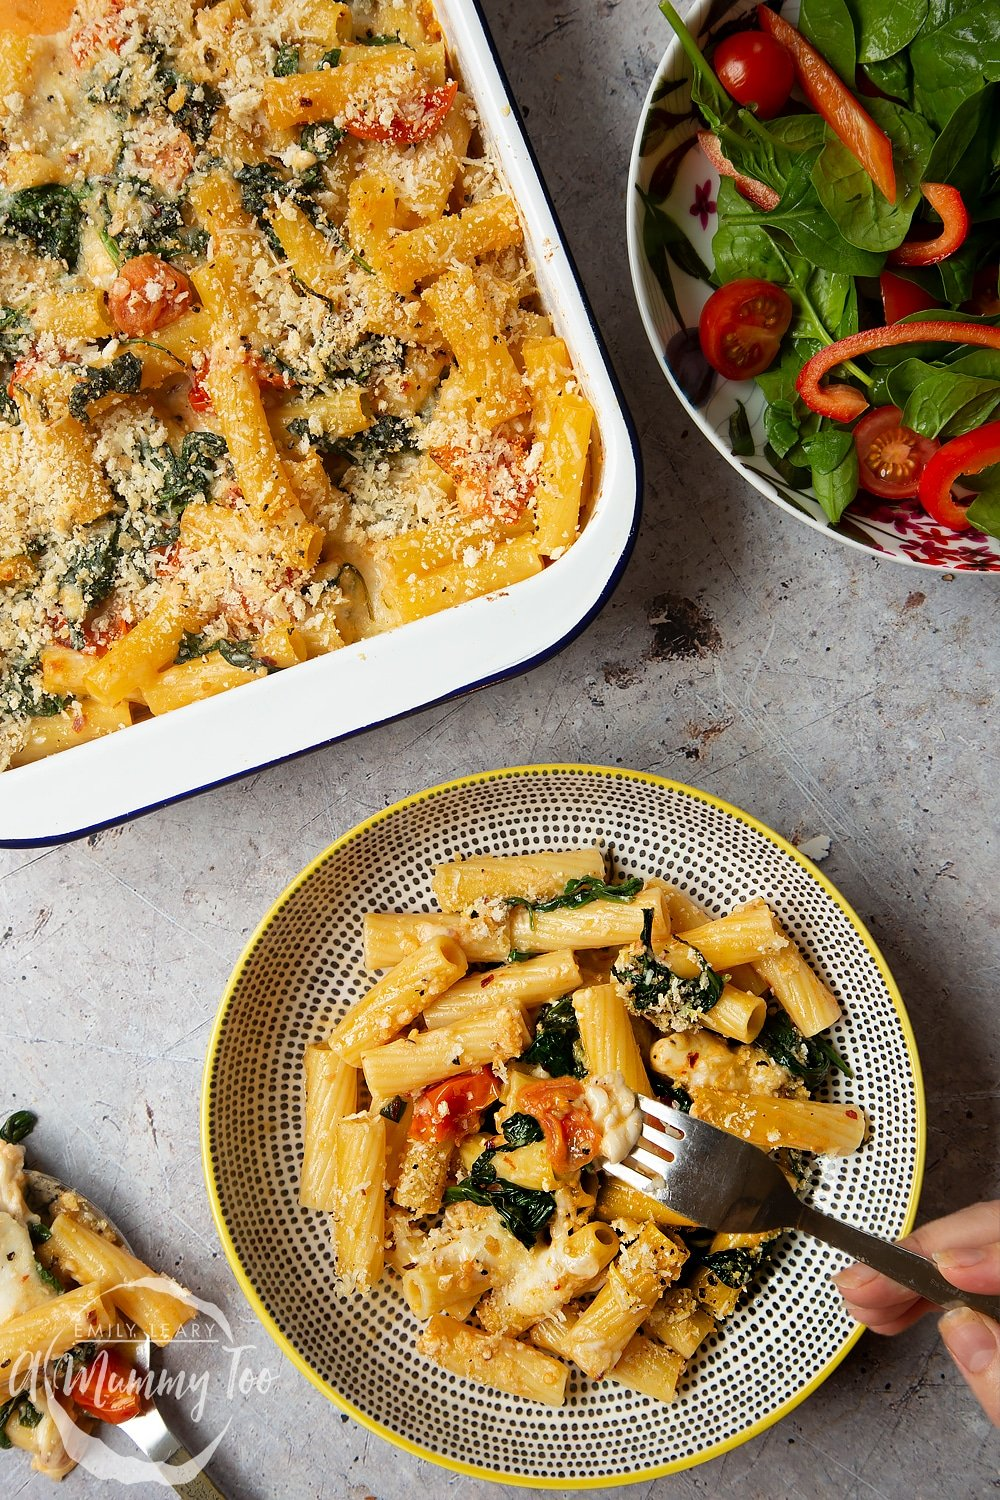 A fork going into the bowl of Cherry tomato, spinach and garlic mozzarella pasta bake. The bowl is sat alongside the pan with the remainder of the Cherry tomato, spinach and garlic mozzarella pasta bake alongside a side salad.